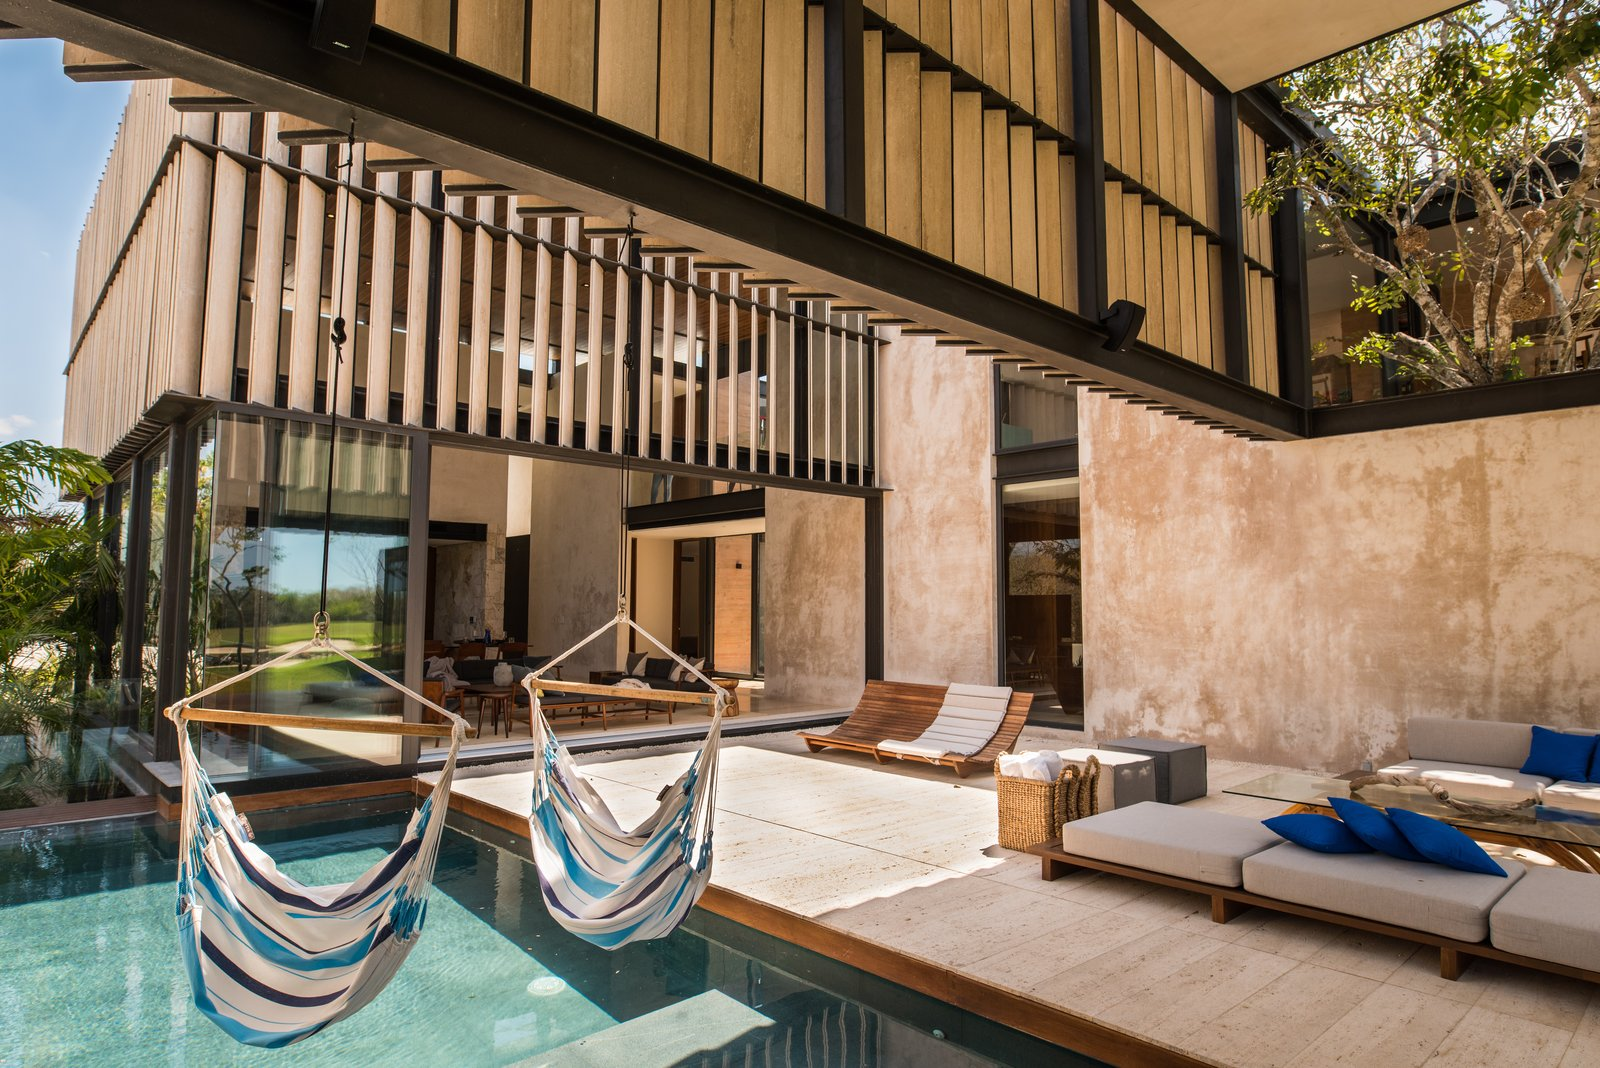 Outdoor, Standard Construction Pools, Tubs, Shower, and Back Yard Pool  Casa Chaaltun by tescala